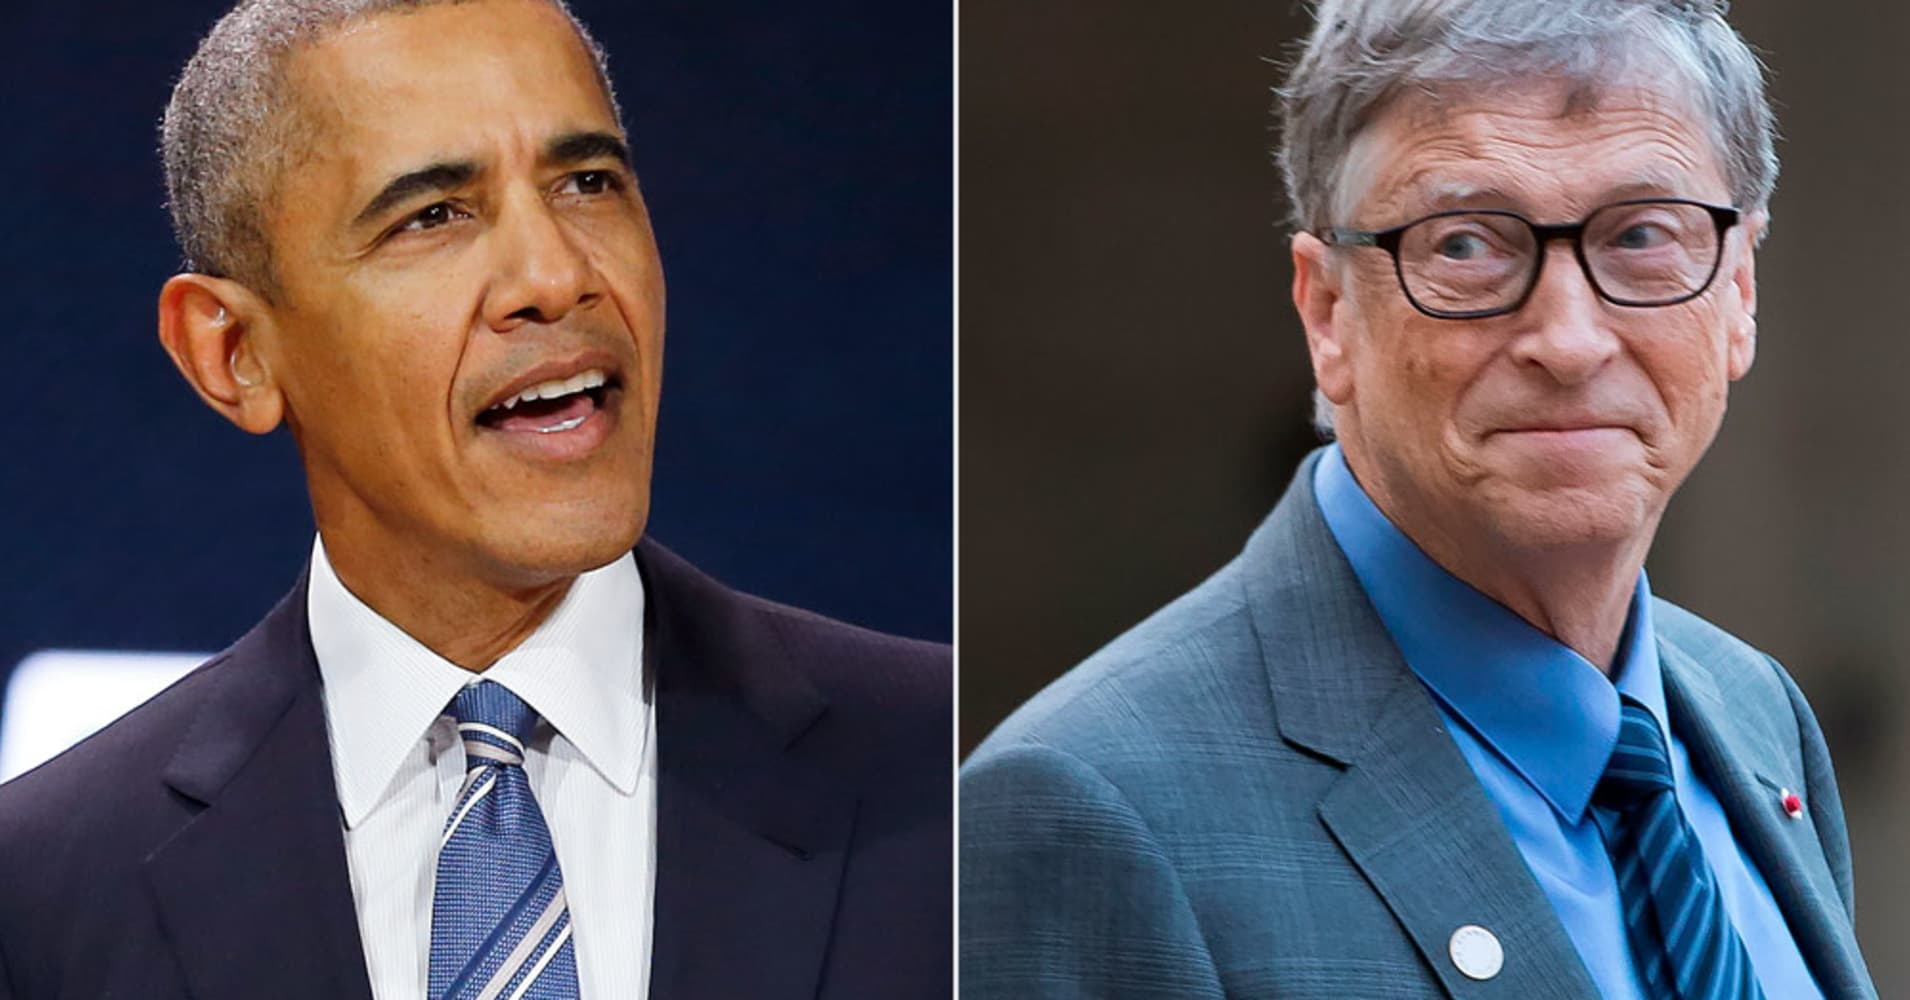 Business books recommended by Bill Gates, Barack Obama and other successful people